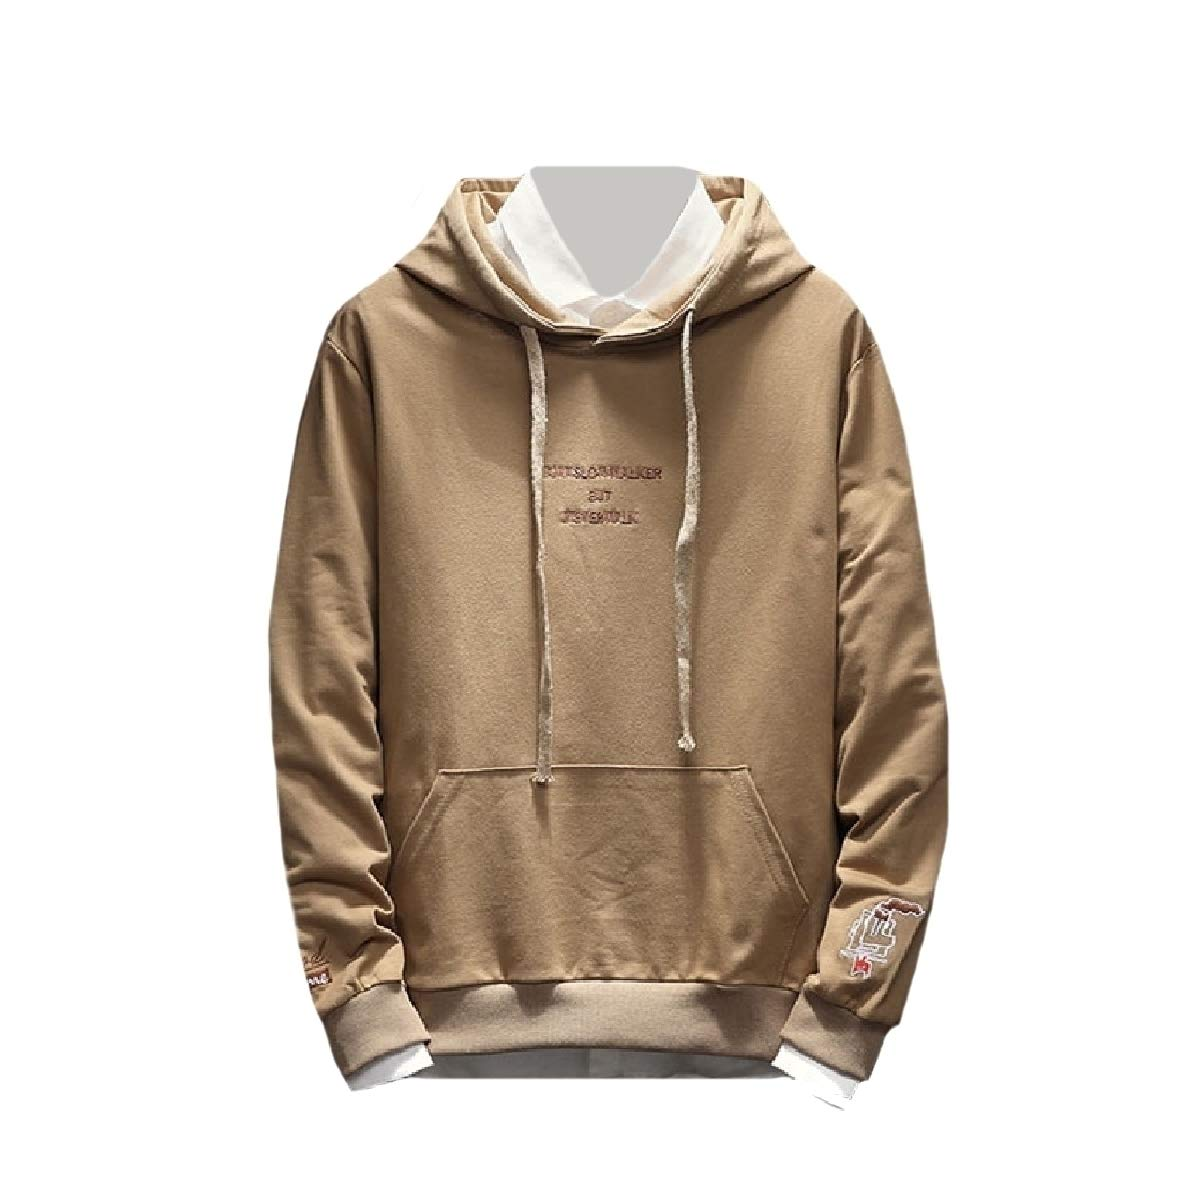 YUNY Mens Long-Sleeve Pullover Pockets Embroidery Hoodies Sweater Apricot XL